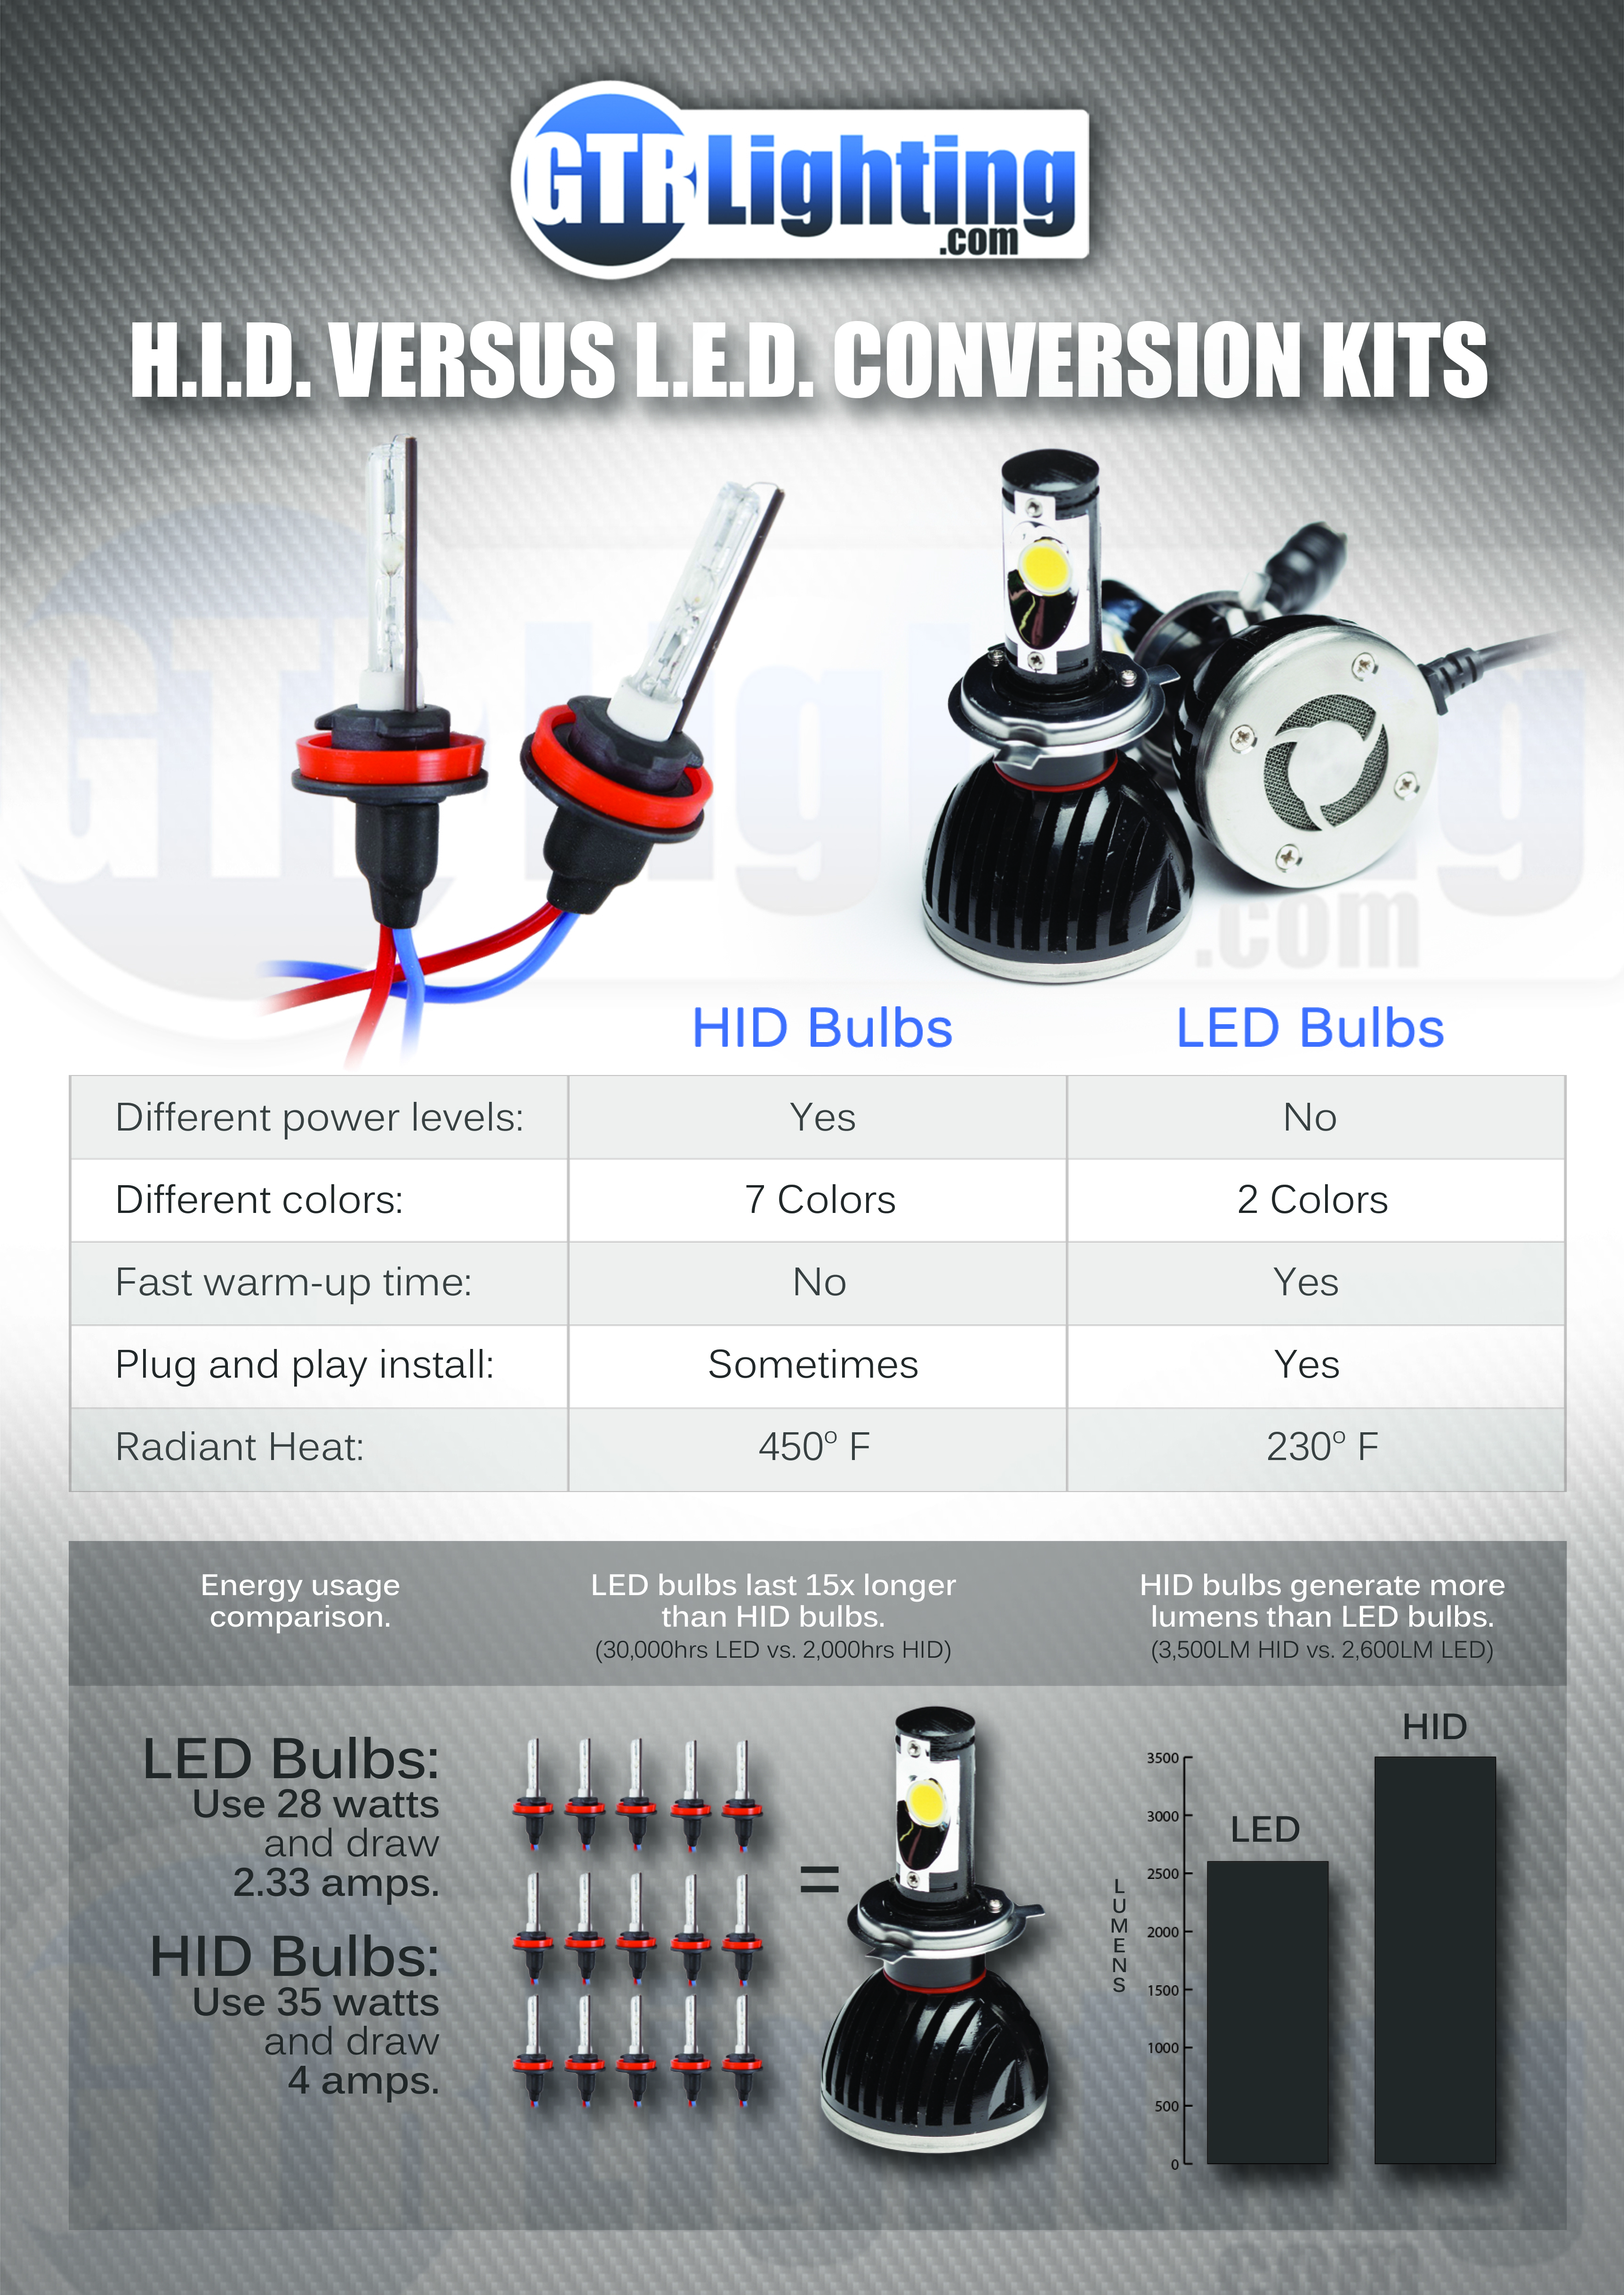 This infographic shows the main differences between HID and LED headlight conversion kits.